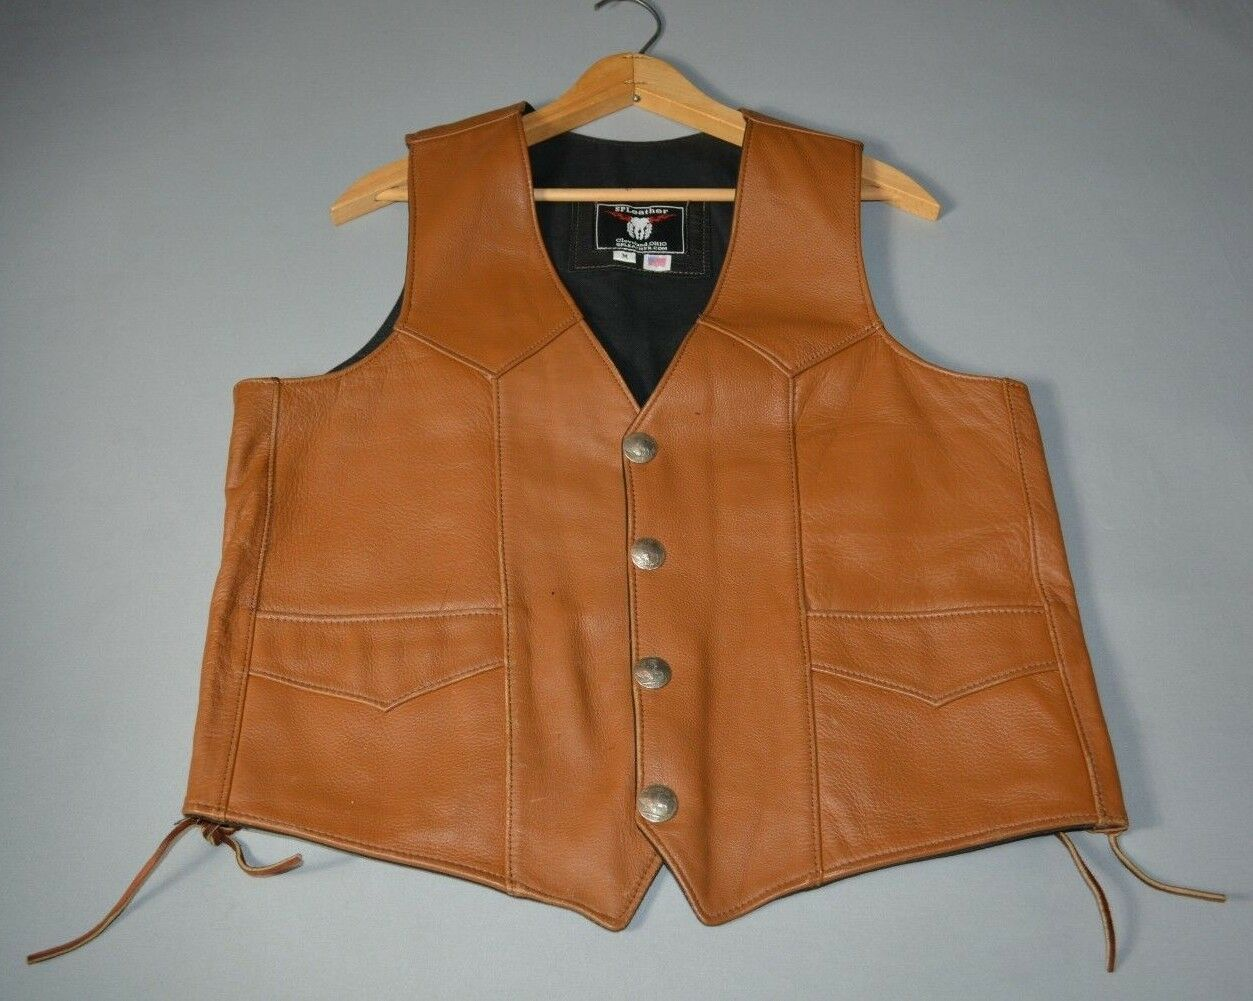 S.P. Leather Brown Leather Vest - Lace Up Sides - Size M